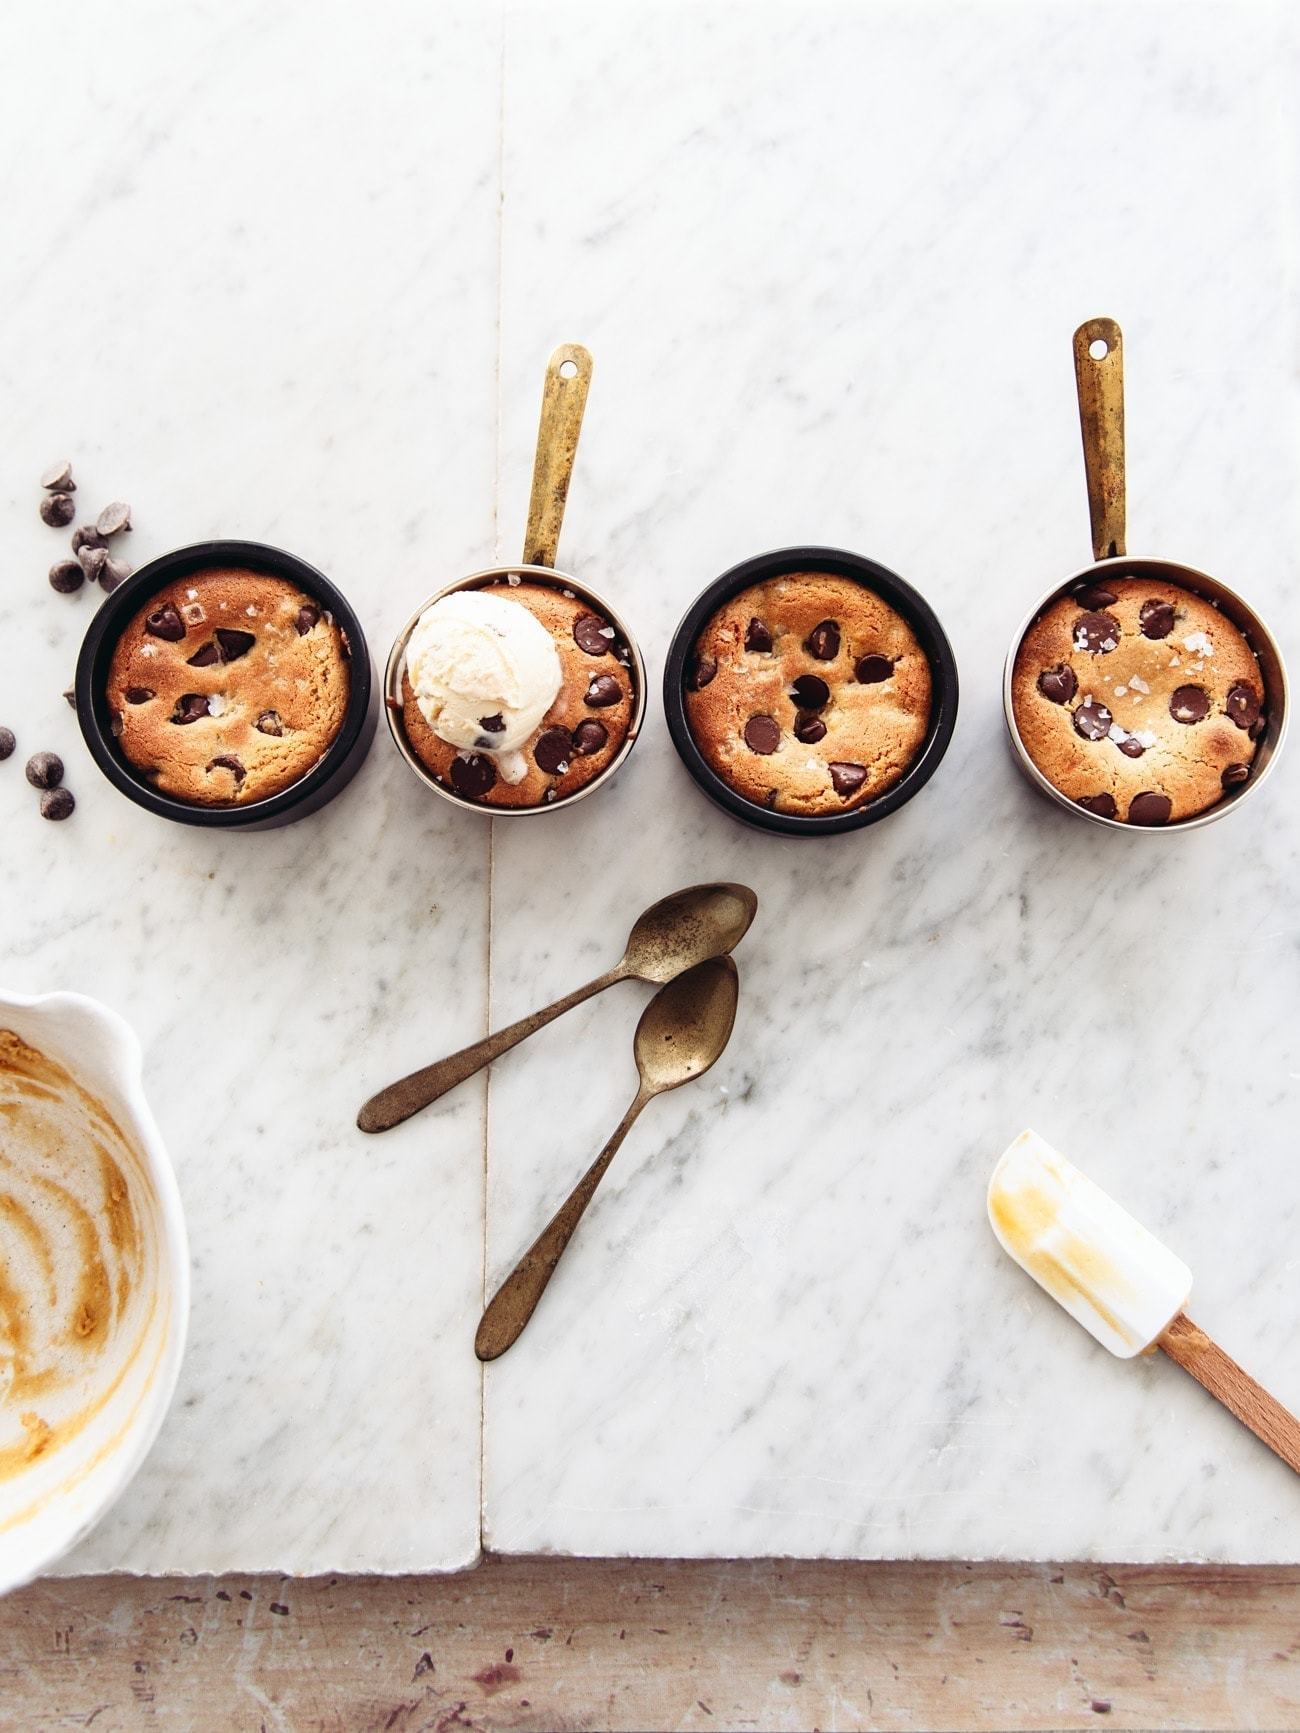 Food blogger Izy Hossack makes Gooey Chocolate Chip Cookie Pots for 2 people with a vegan option